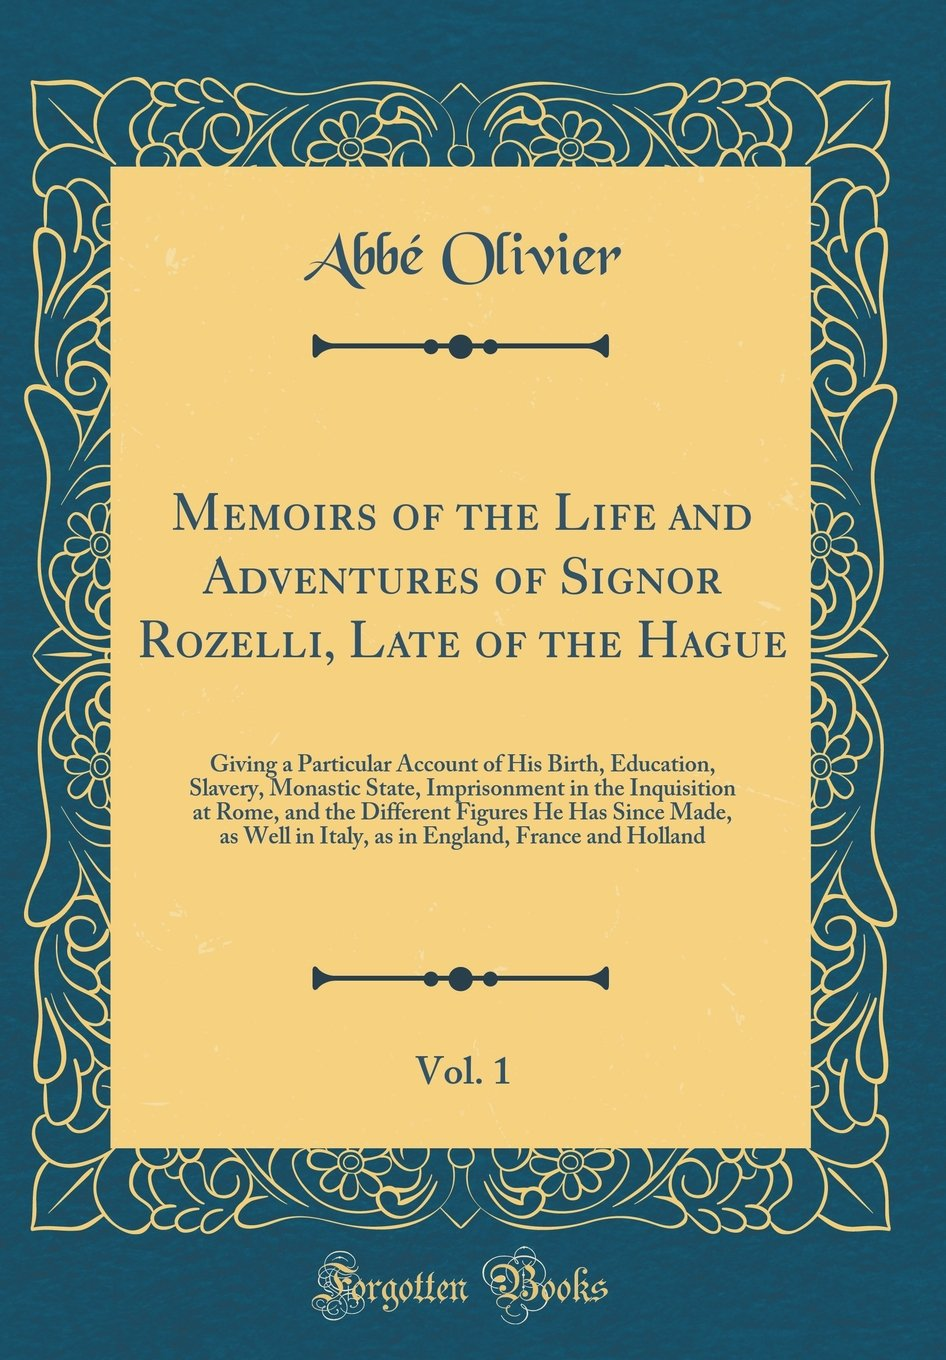 Memoirs of the Life and Adventures of Signor Rozelli, Late of the Hague, Vol. 1: Giving a Particular Account of His Birth, Education, Slavery, ... Figures He Has Since Made, as Well in pdf